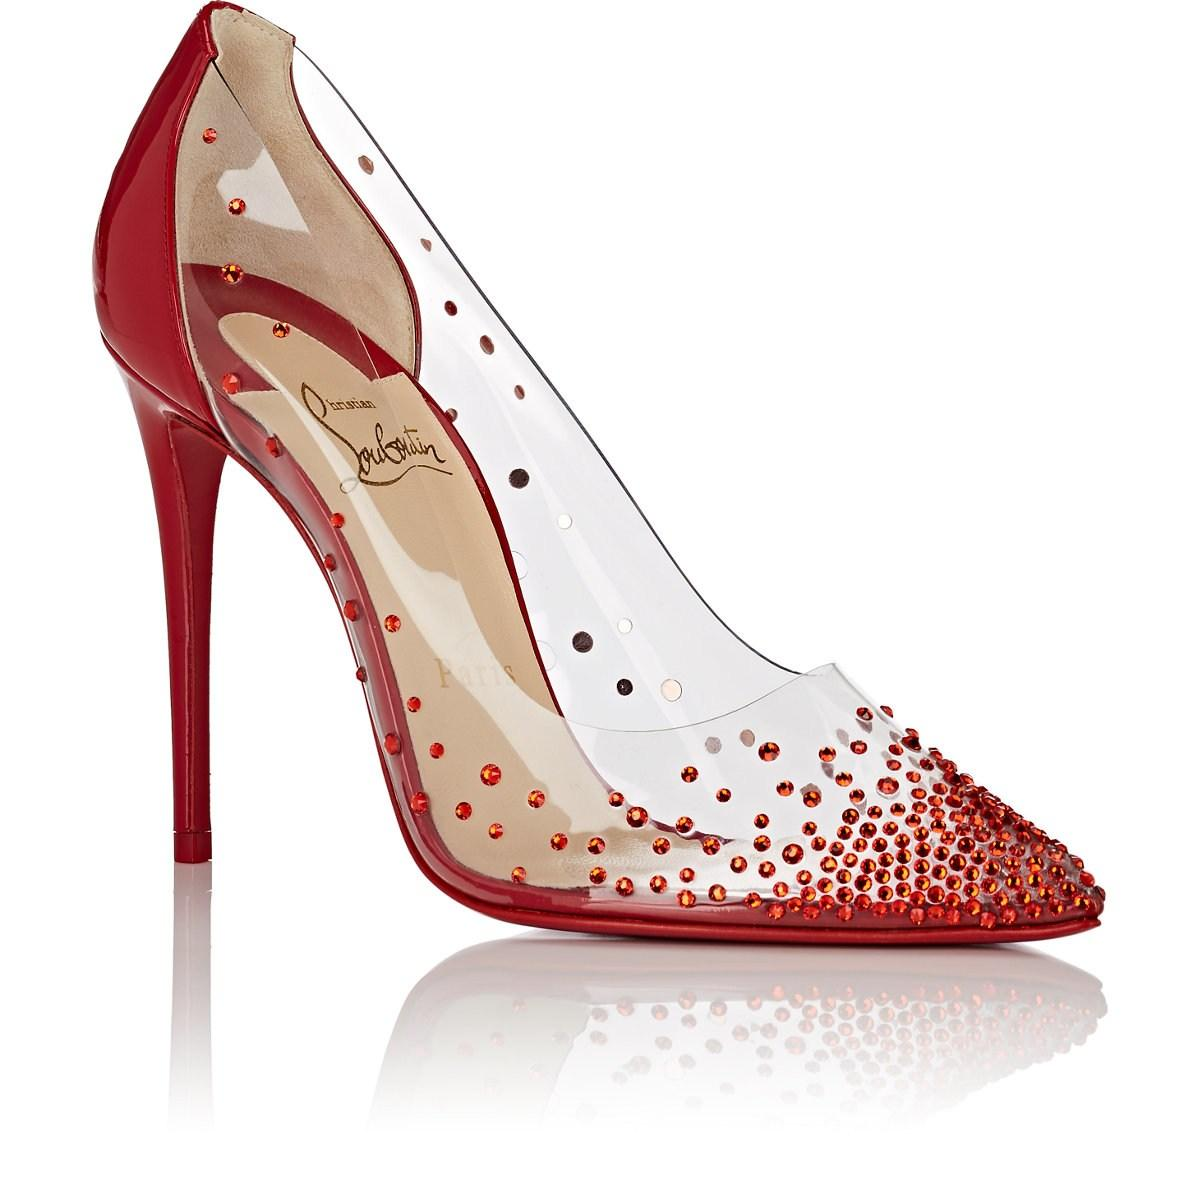 65147eb9b028 Christian Louboutin Degrastrass Pvc   Leather Pumps in Red - Lyst